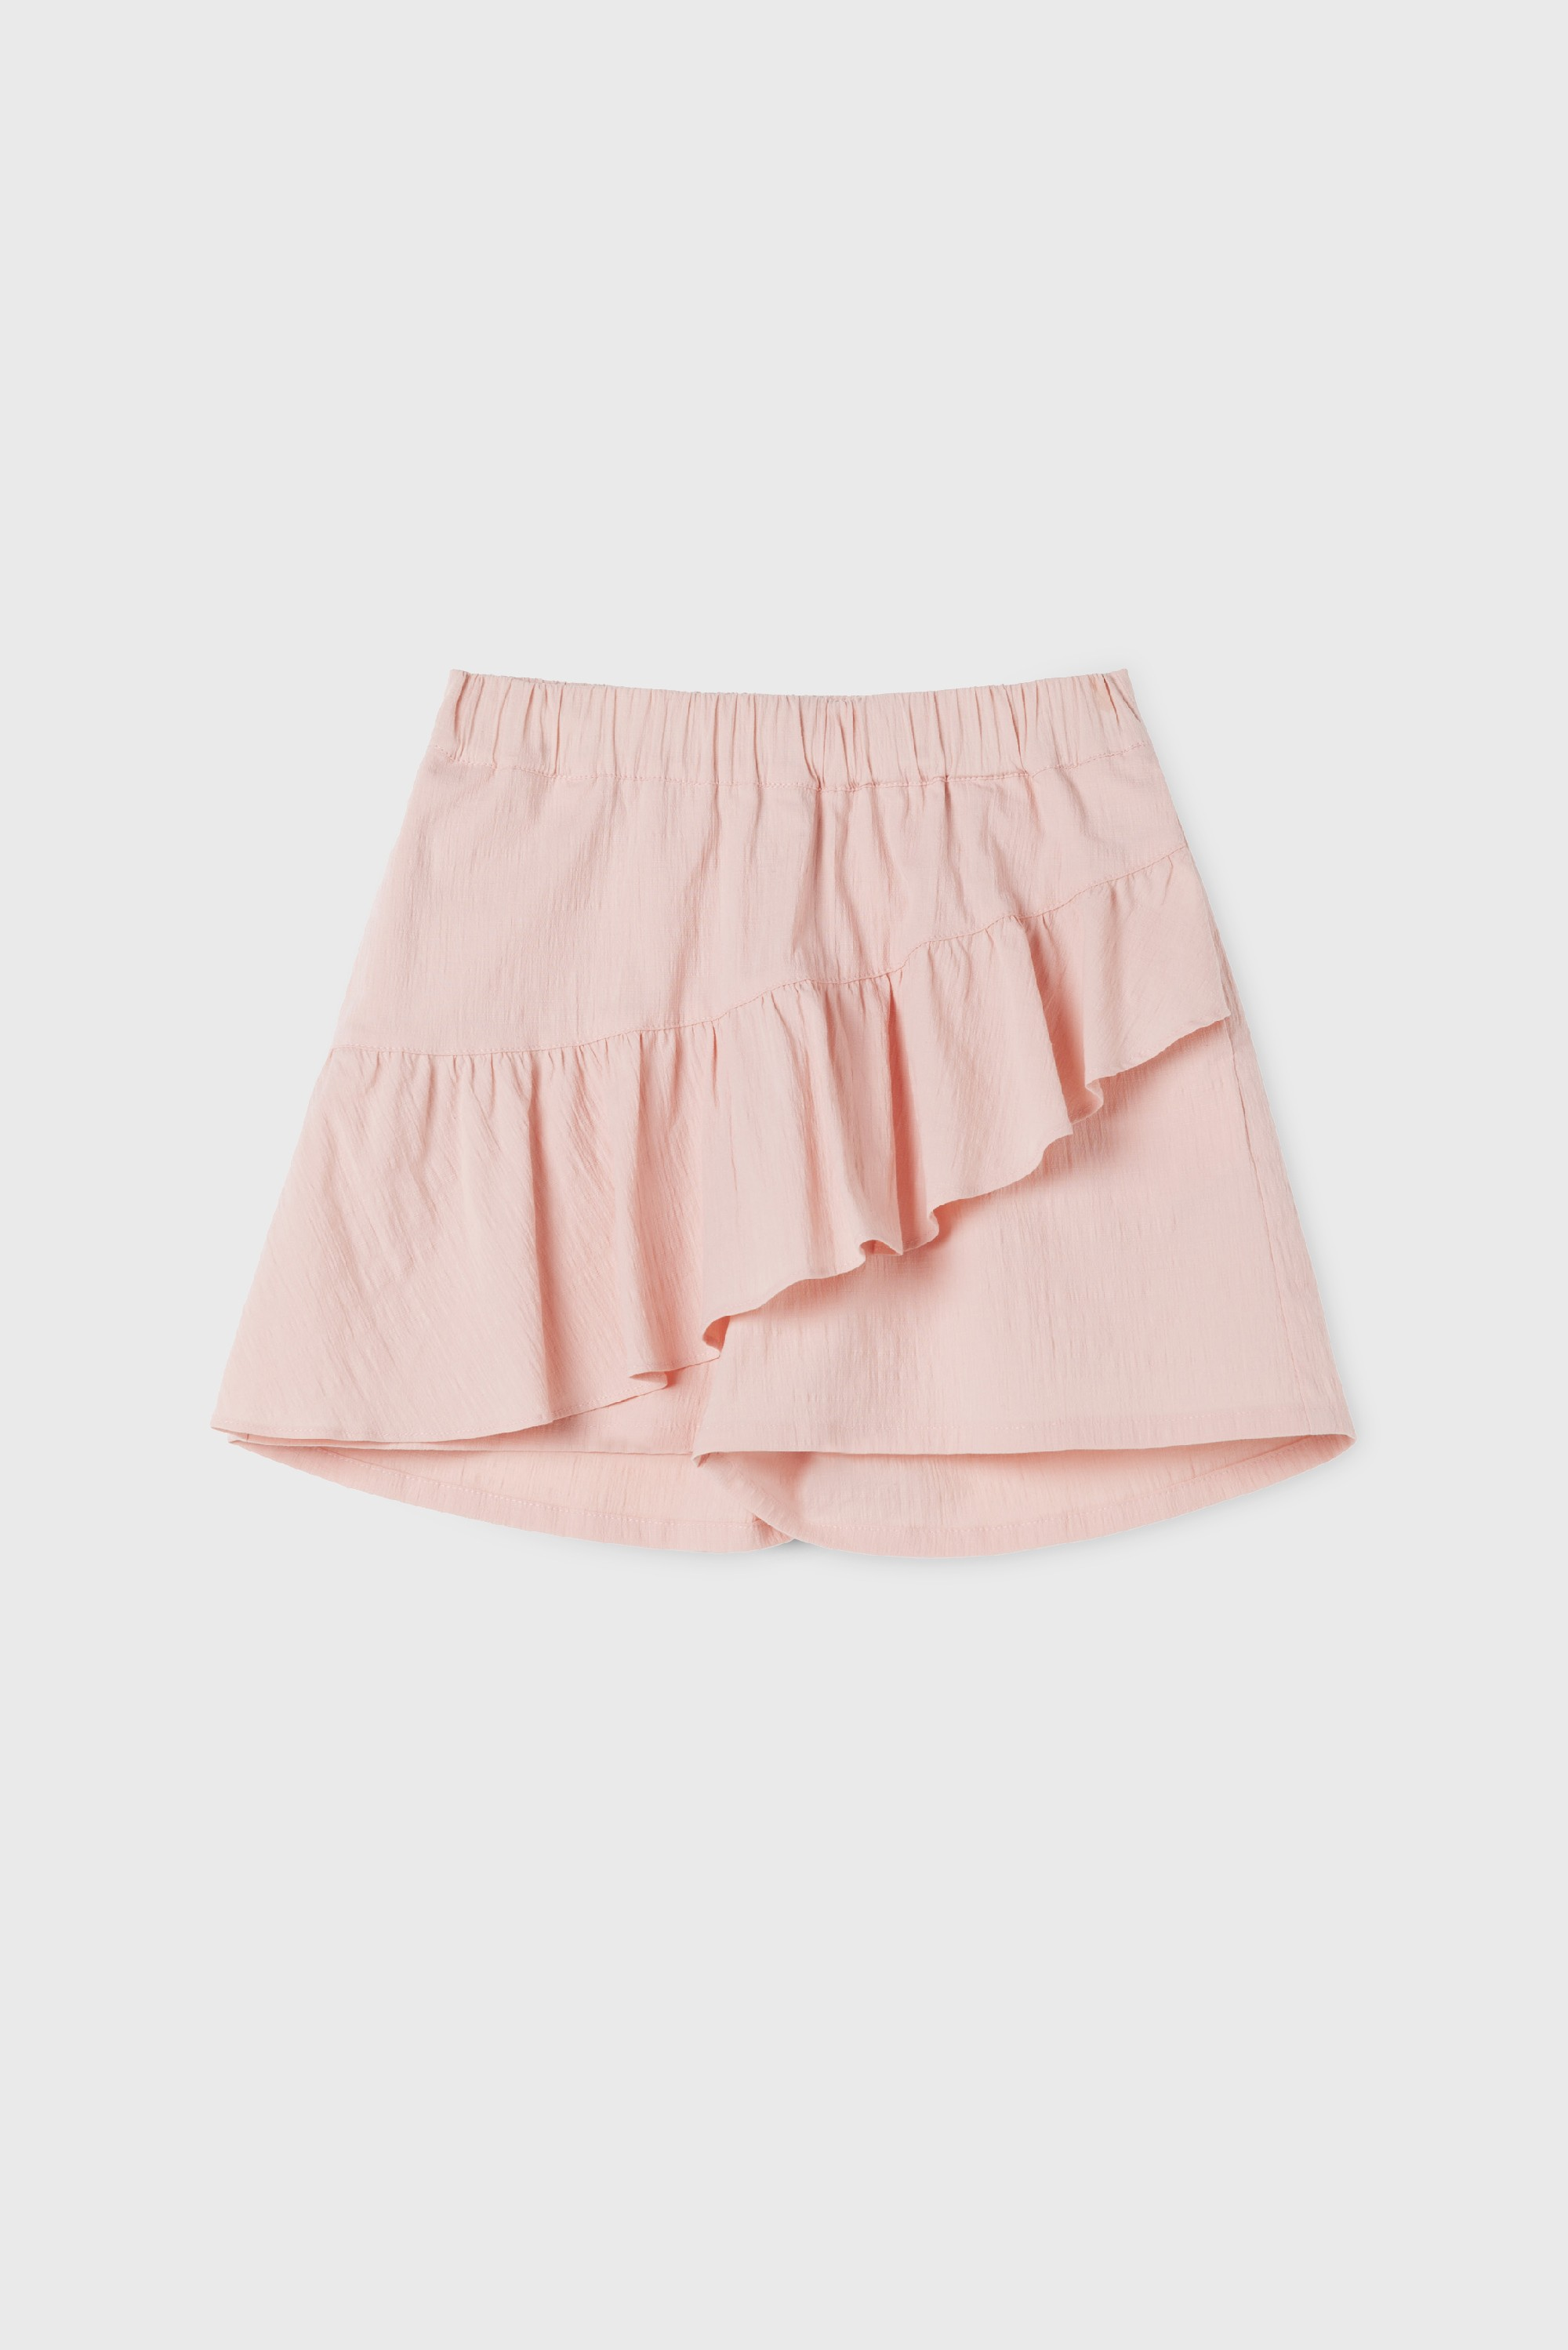 PINK COTTON RUFFLE SKIRT PANT